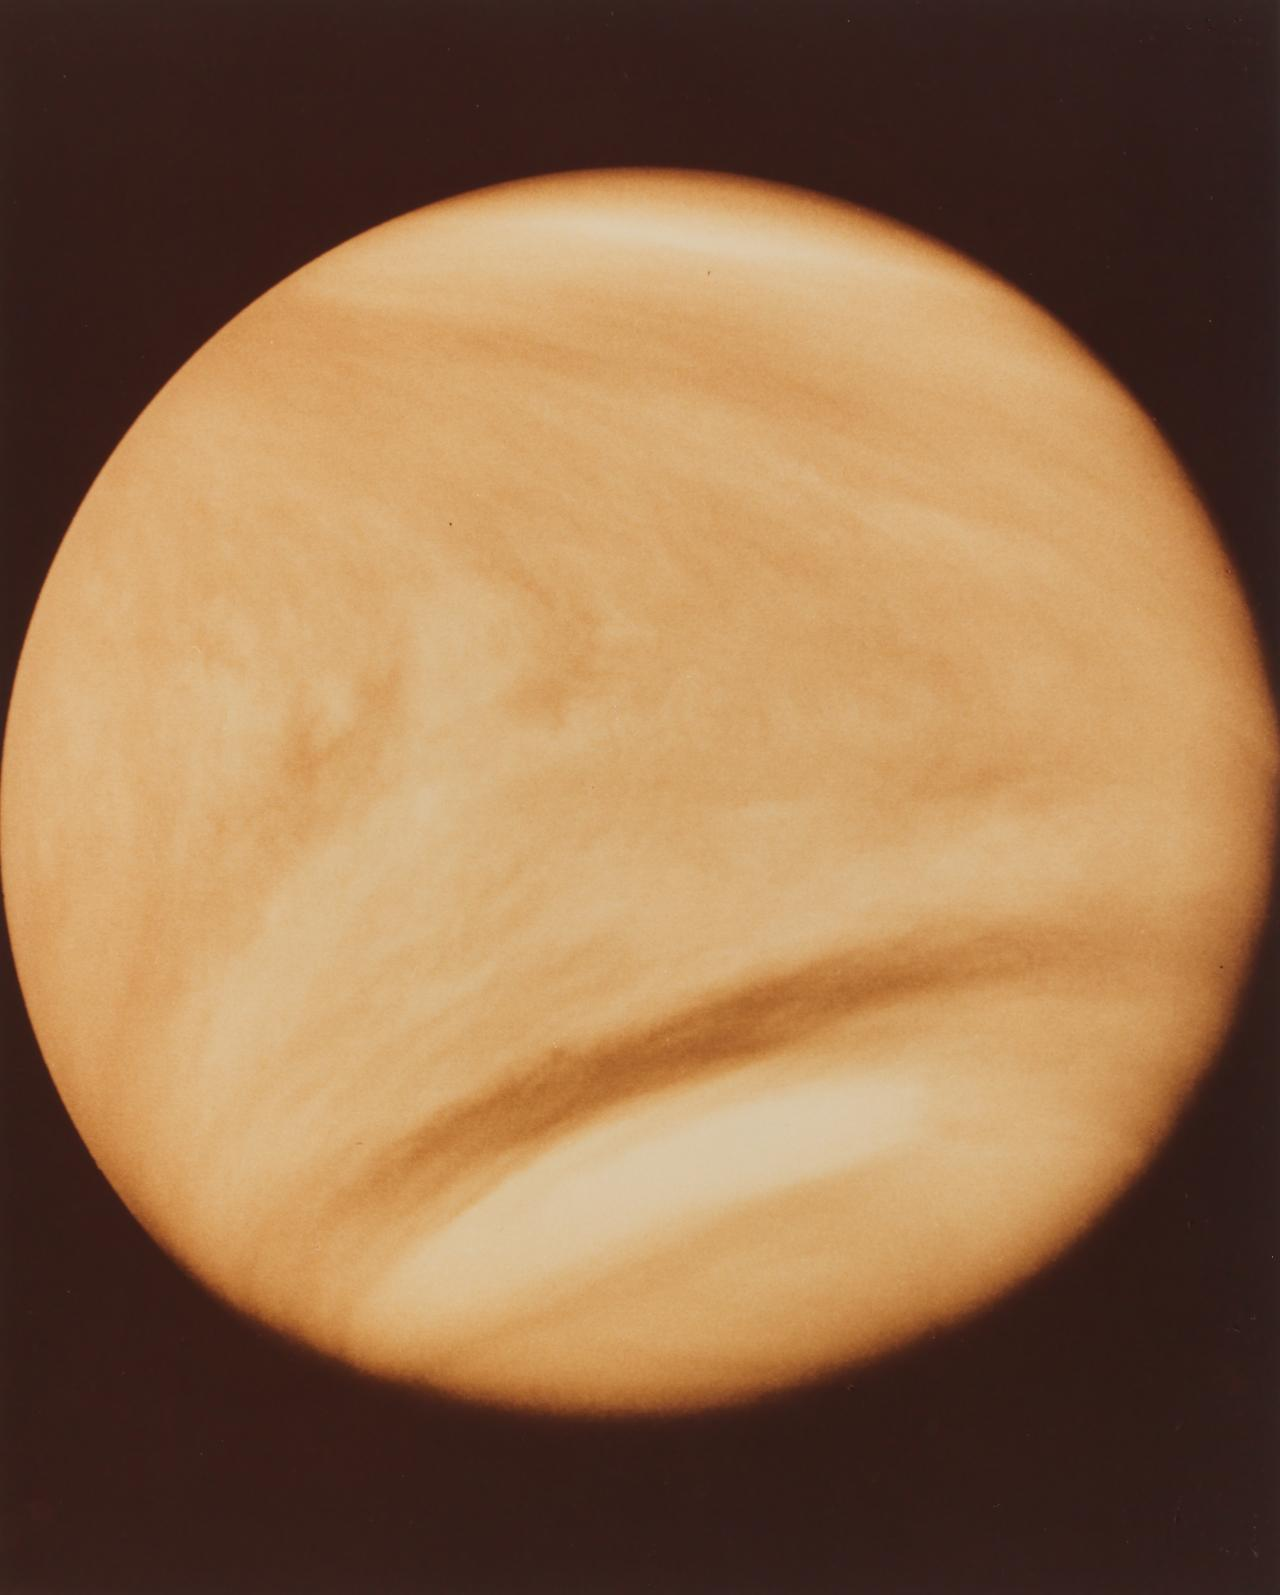 Full disk of Venus taken by Pioneer Venus Orbiter on 10 February 1979